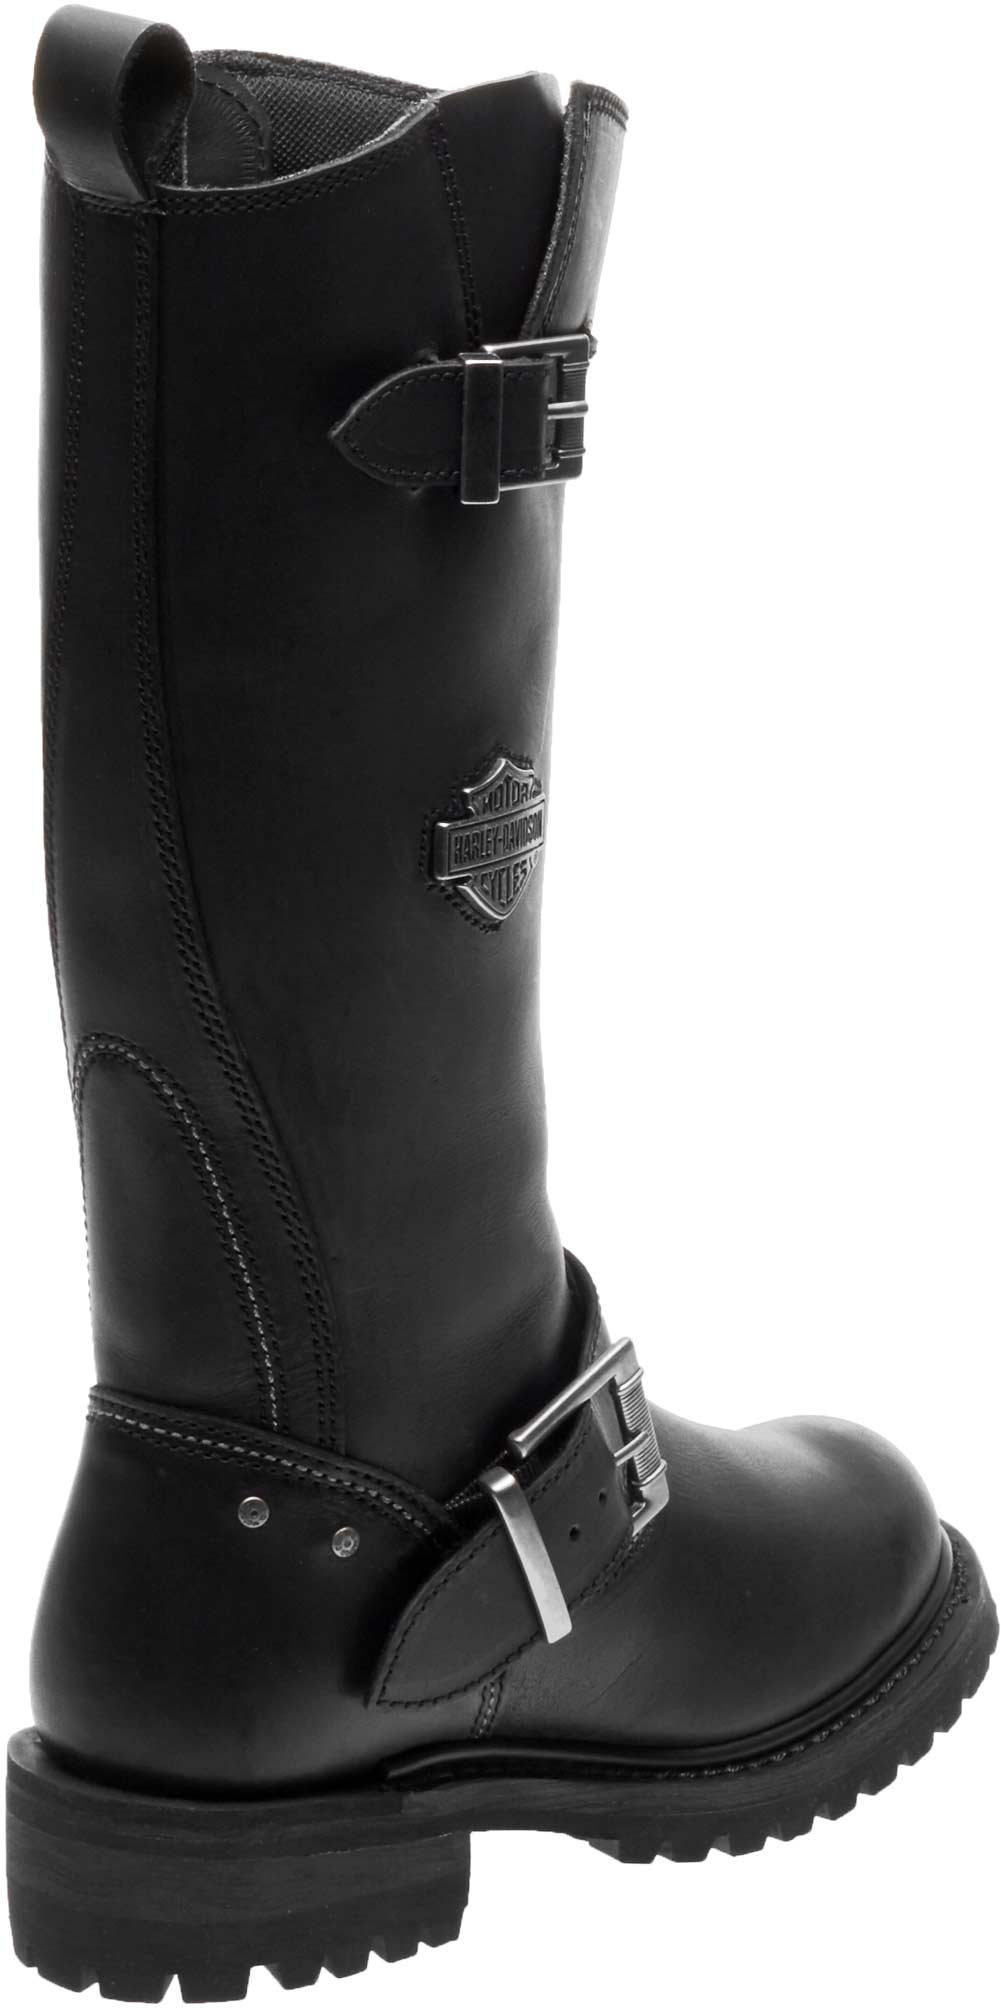 Harley-Davidson® Women/'s Chalmers Black Leather Motorcycle Riding Boots D87154